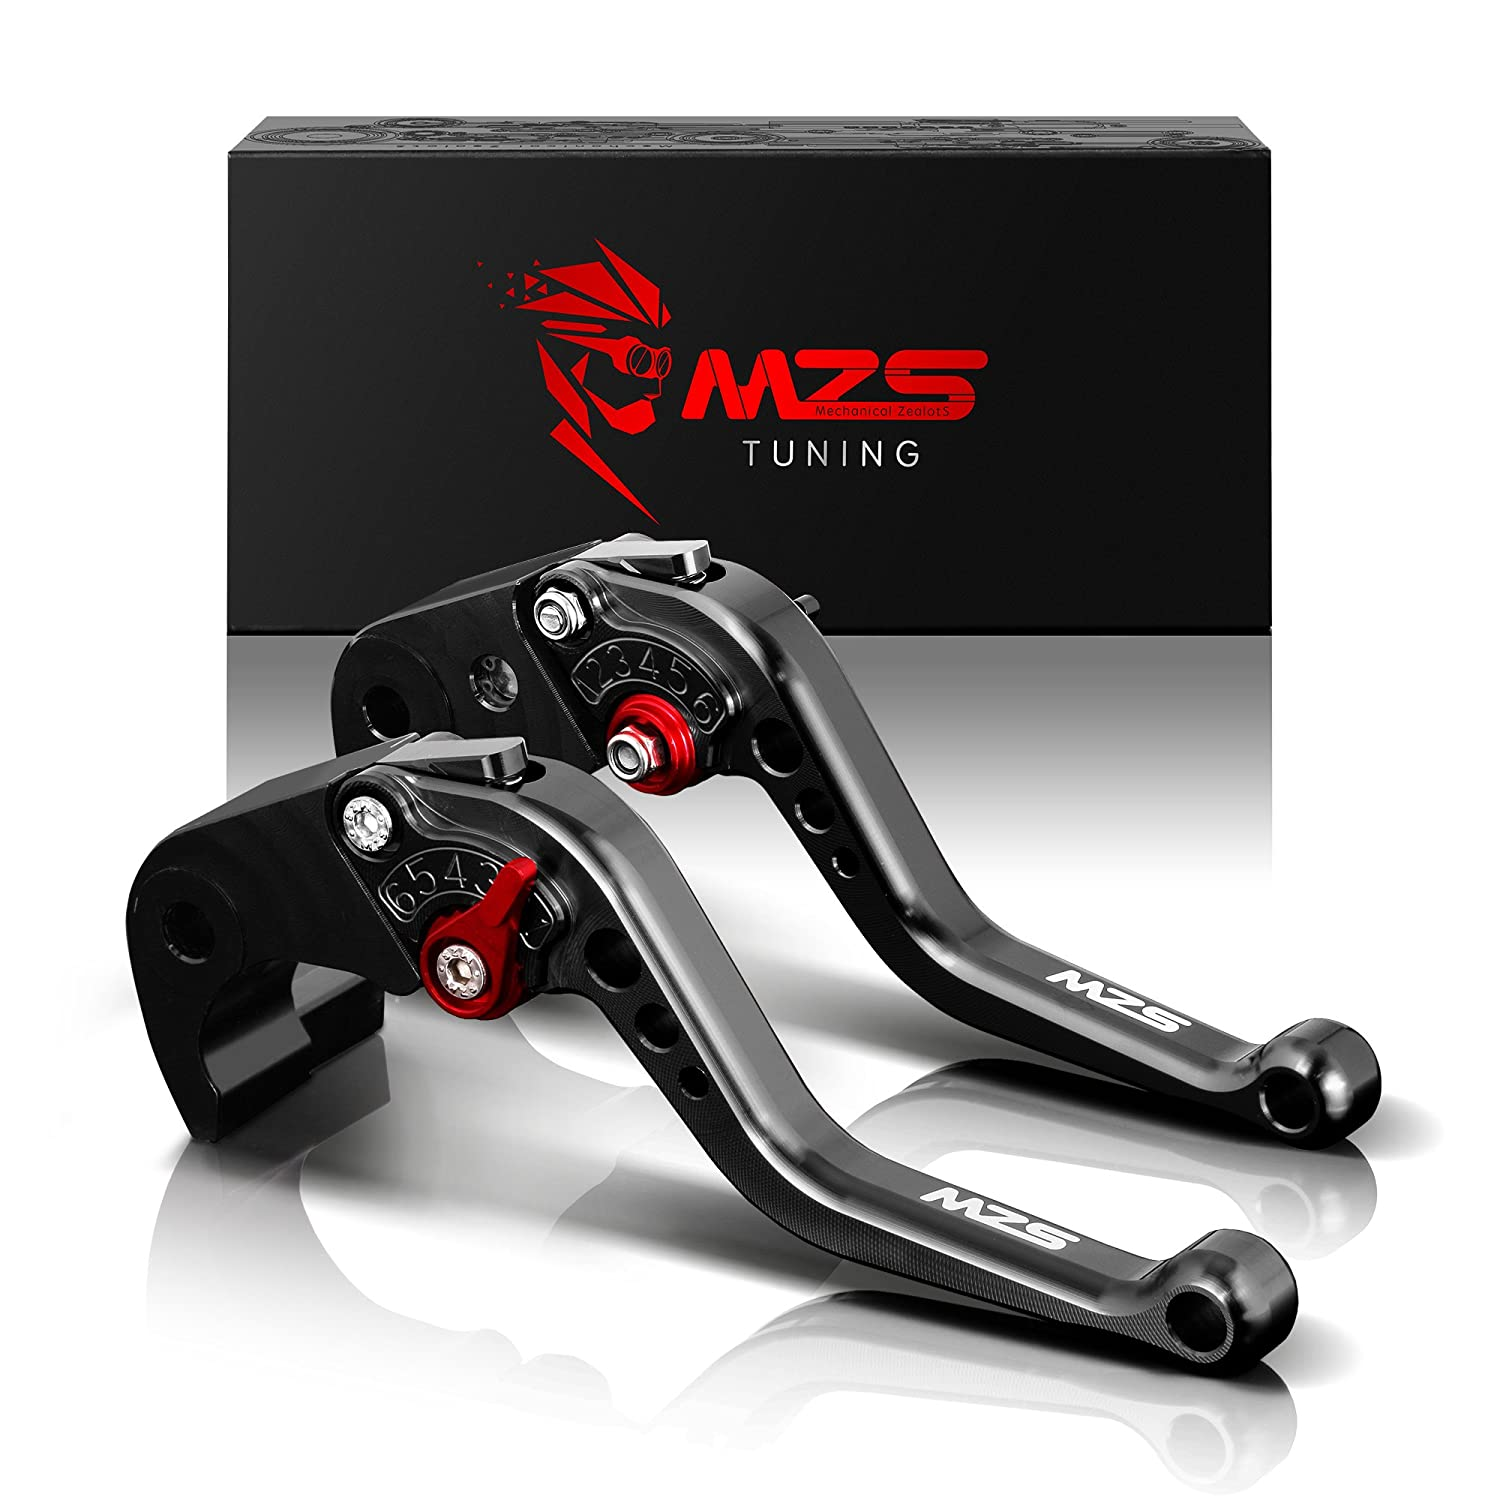 MZS Short Brake Clutch Levers for Honda GROM/MSX125 2014-2018, CBR250R 2011-2013, CBR300R/CB300F/FA 2014-2017, CB400F/CB400R 2013-2015, CBR500R/CB500F/X 2013-2018 Black